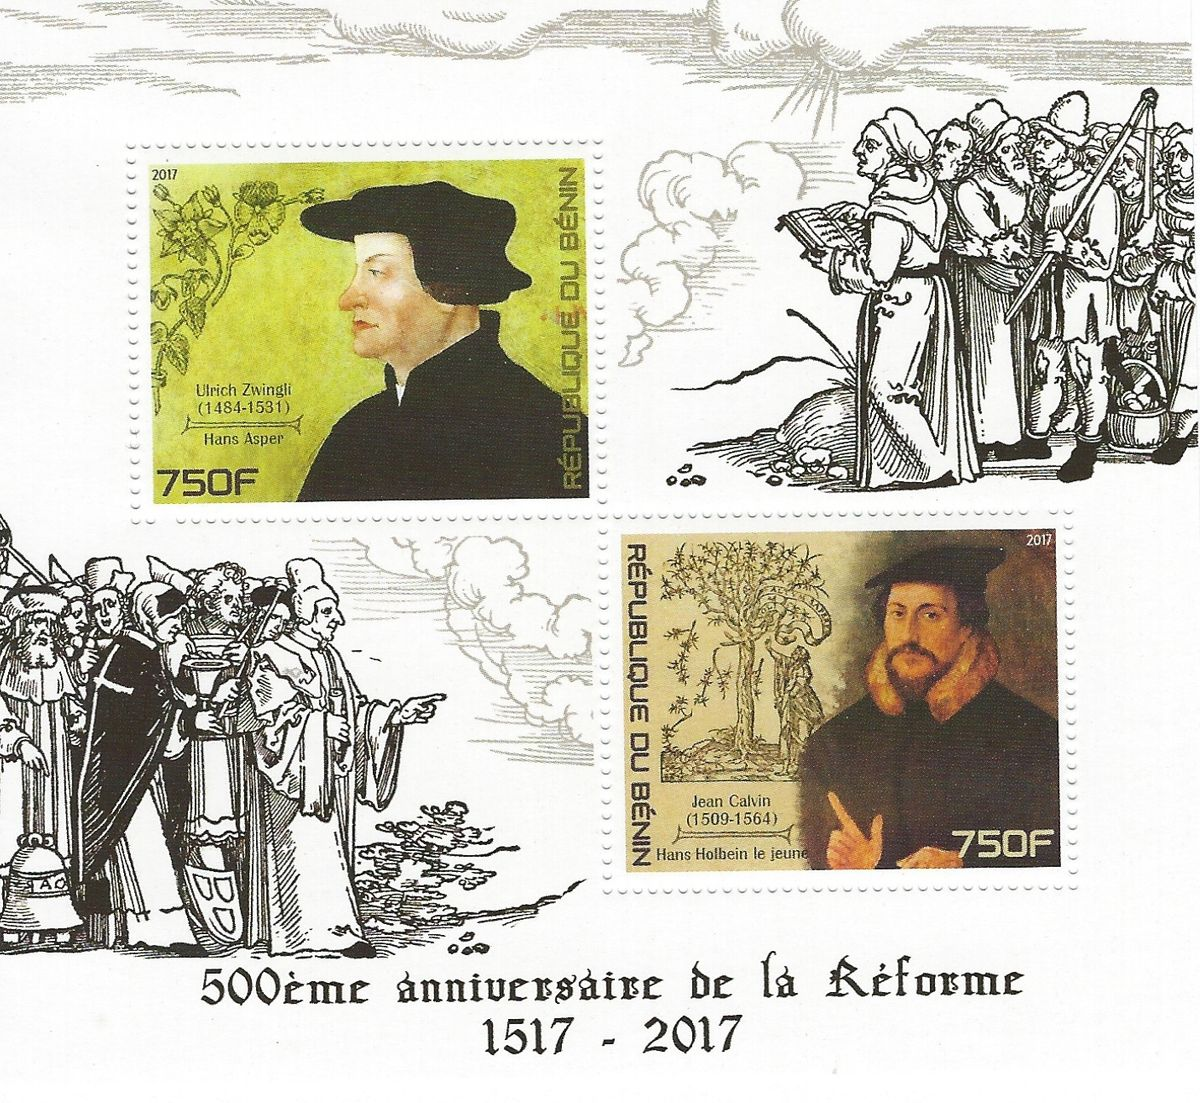 Ulrich Zwingli, Jean Calvin, Briefmarken, Reformation, Luther Briefmarken